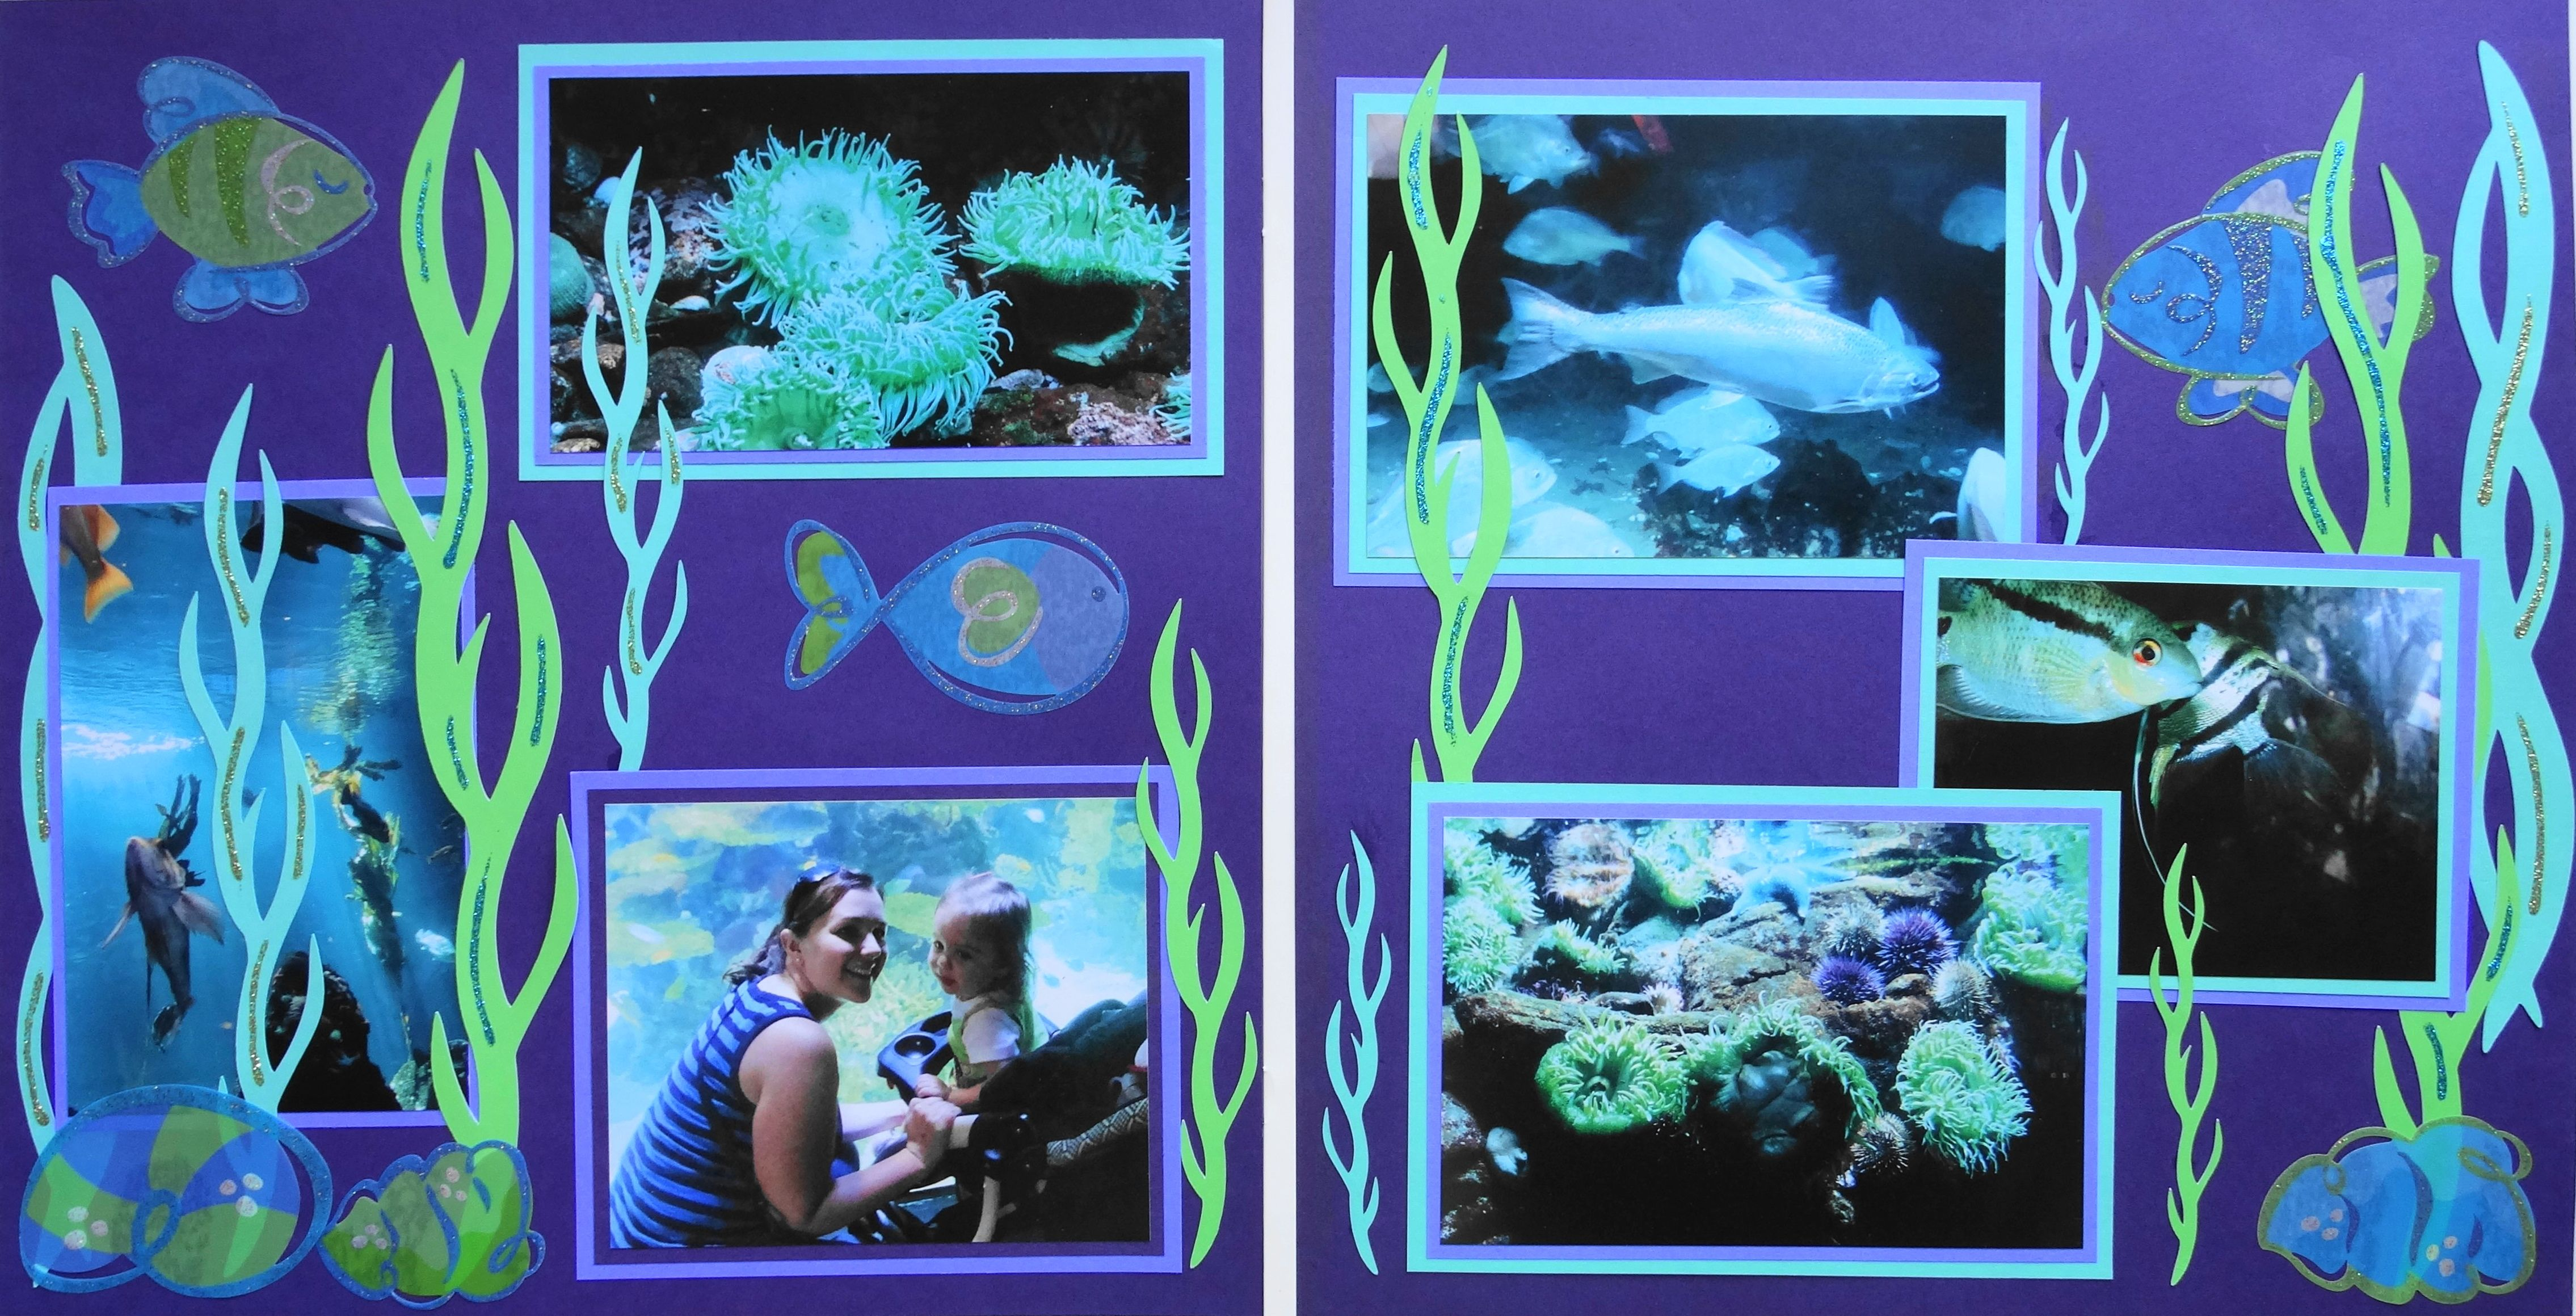 Scrapbook ideas many pictures - Scrapbook Page At The Aquarium A 2 Page Layout With Seaweed And Fish From